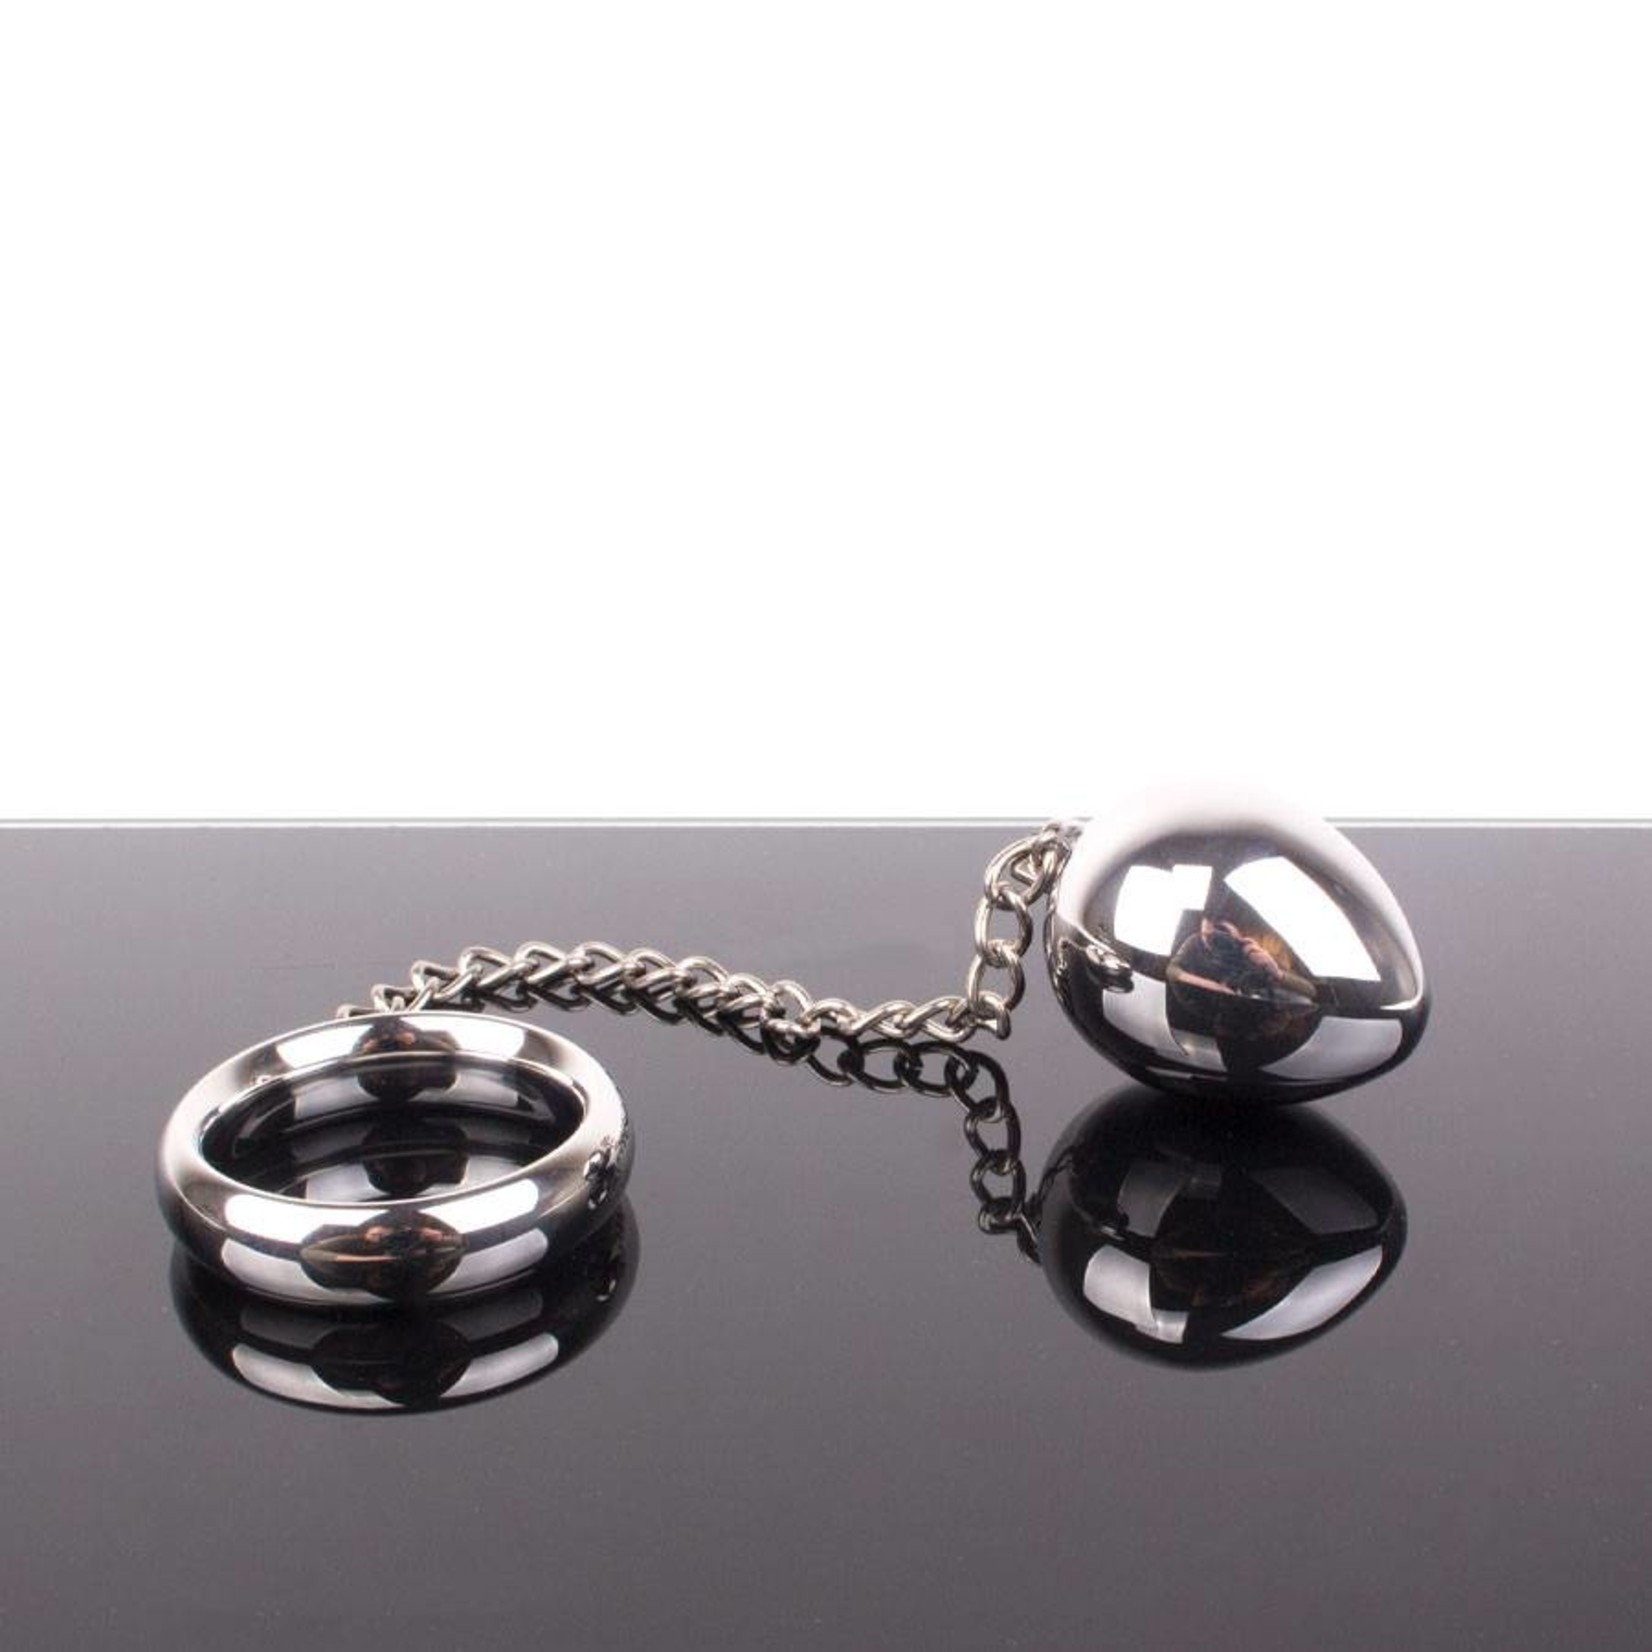 KIOTOS Steel Donut C-Ring Anal Egg with Chain 55x55